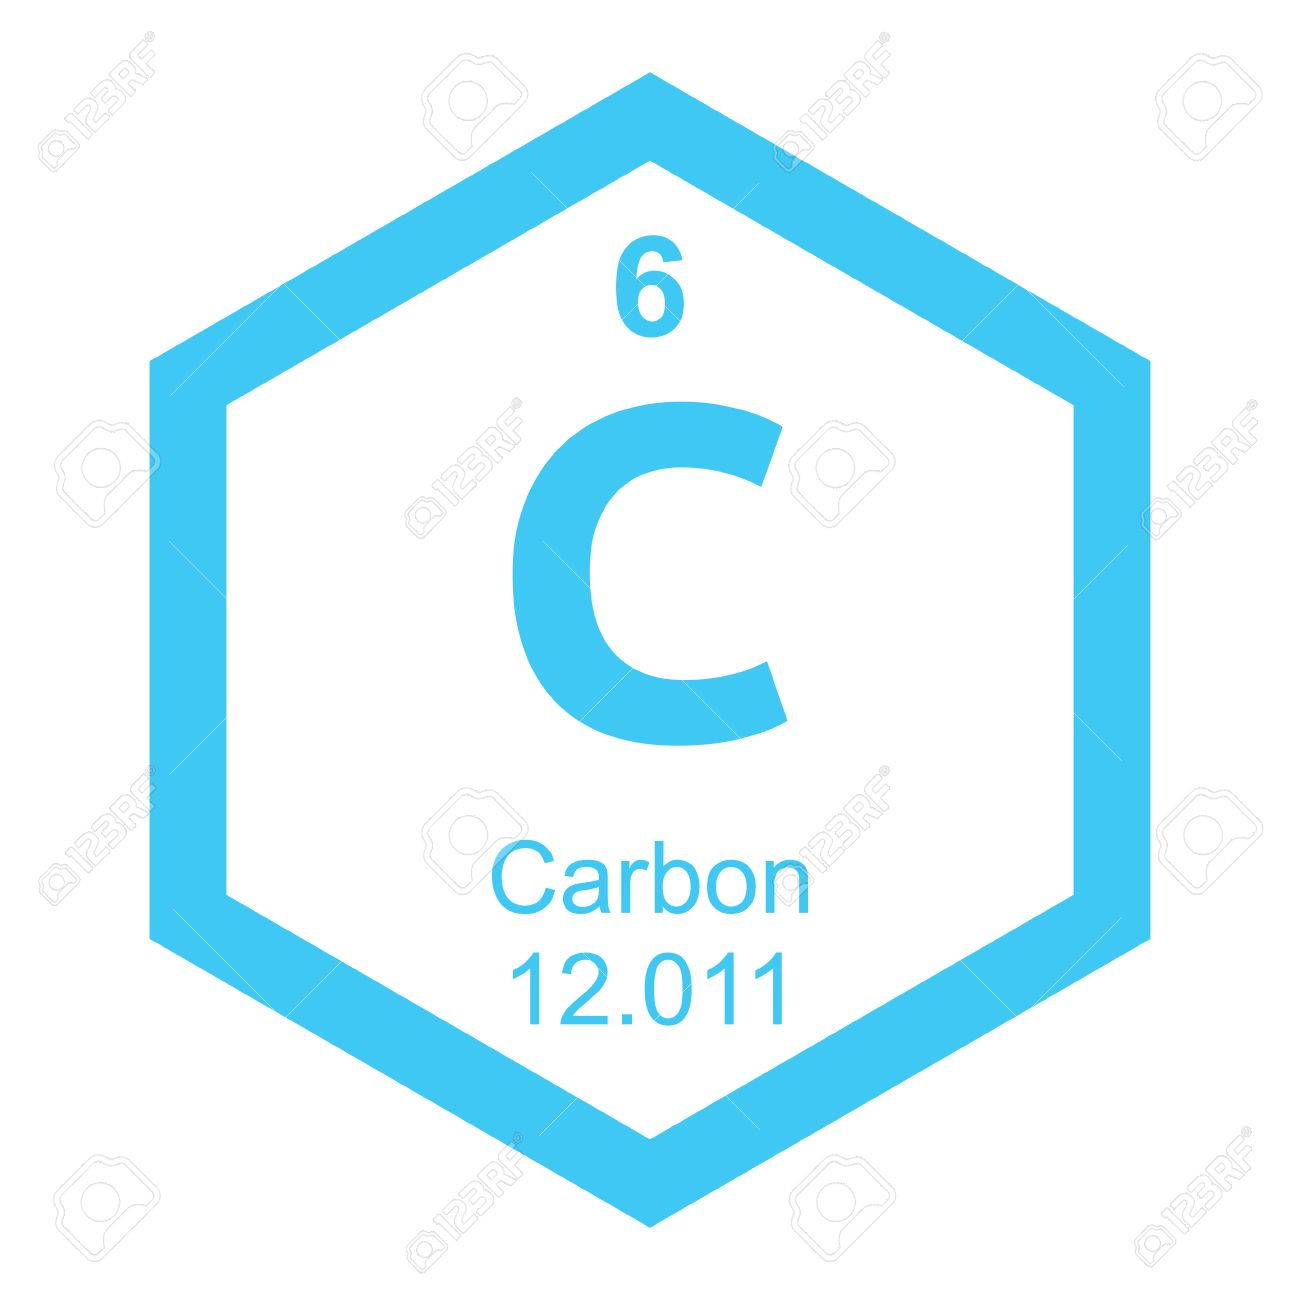 Carbon periodic table square images table design ideas periodic table carbon royalty free cliparts vectors and stock periodic table carbon stock vector 41261537 todoparaelhogarfo gamestrikefo Images